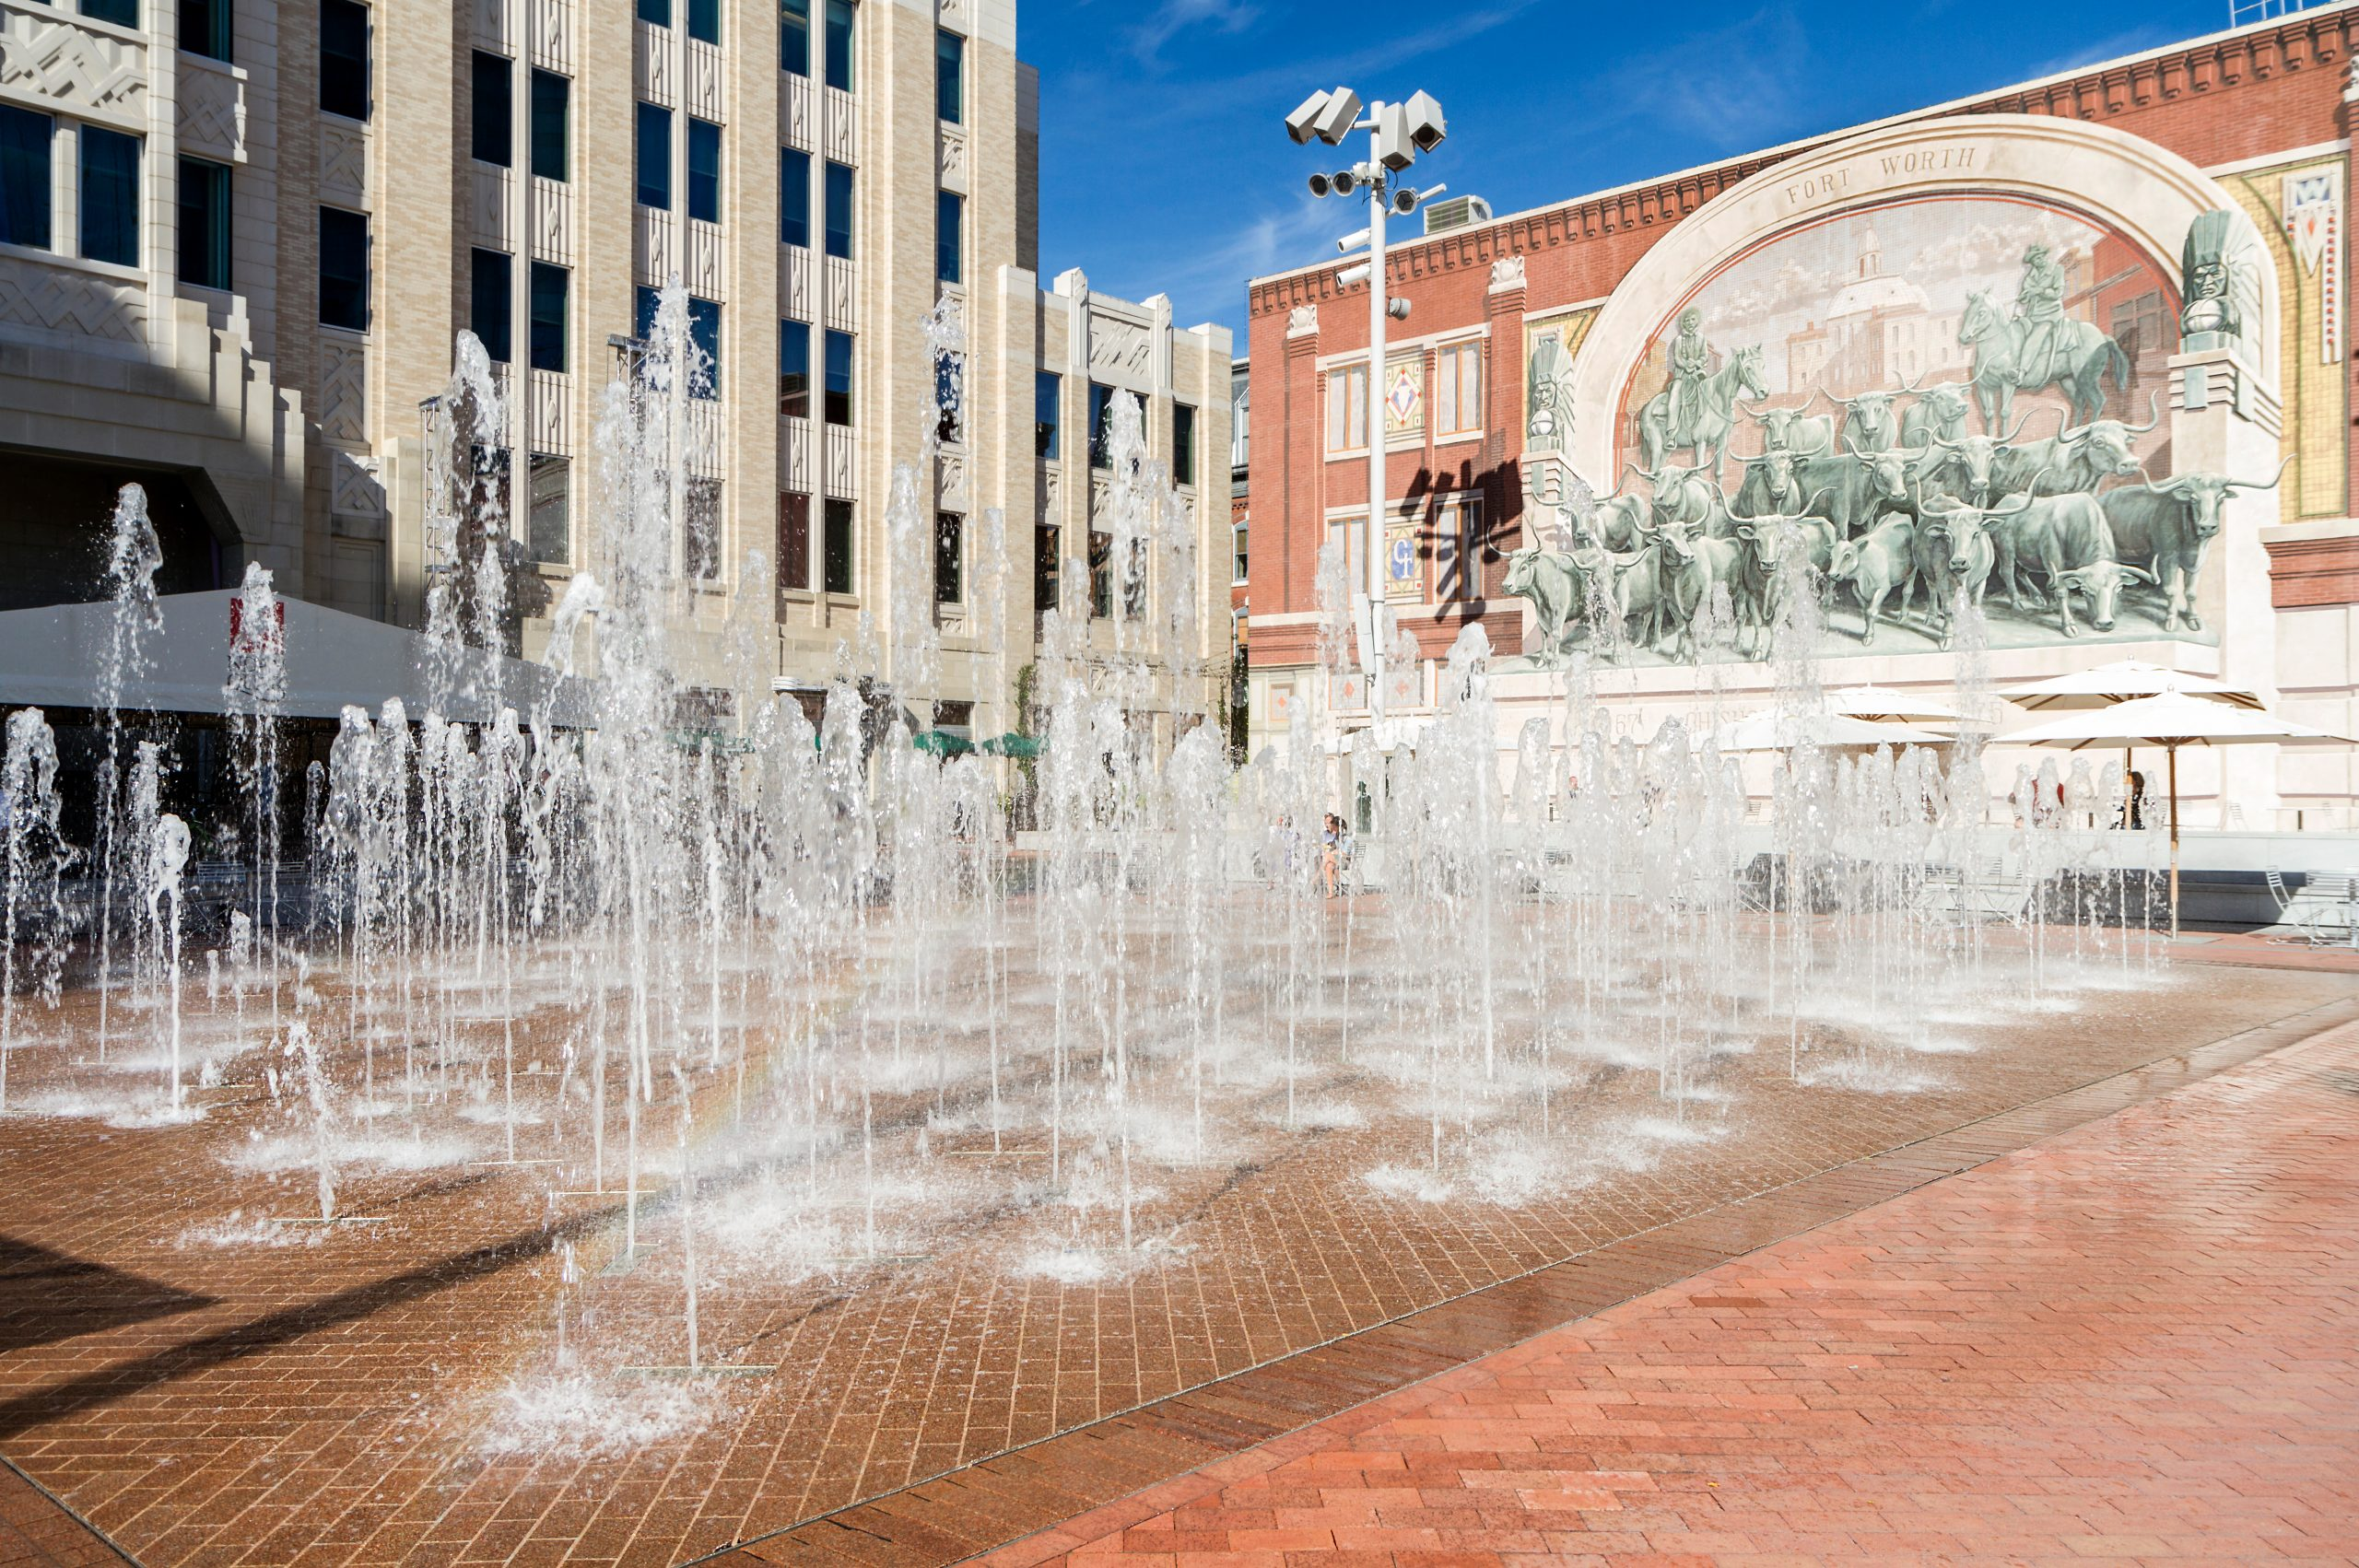 Sundance Square in Ft Worth TX with the fountains on during a sunny day, visiting sundance square is one of the fun things to do in fort worth texas